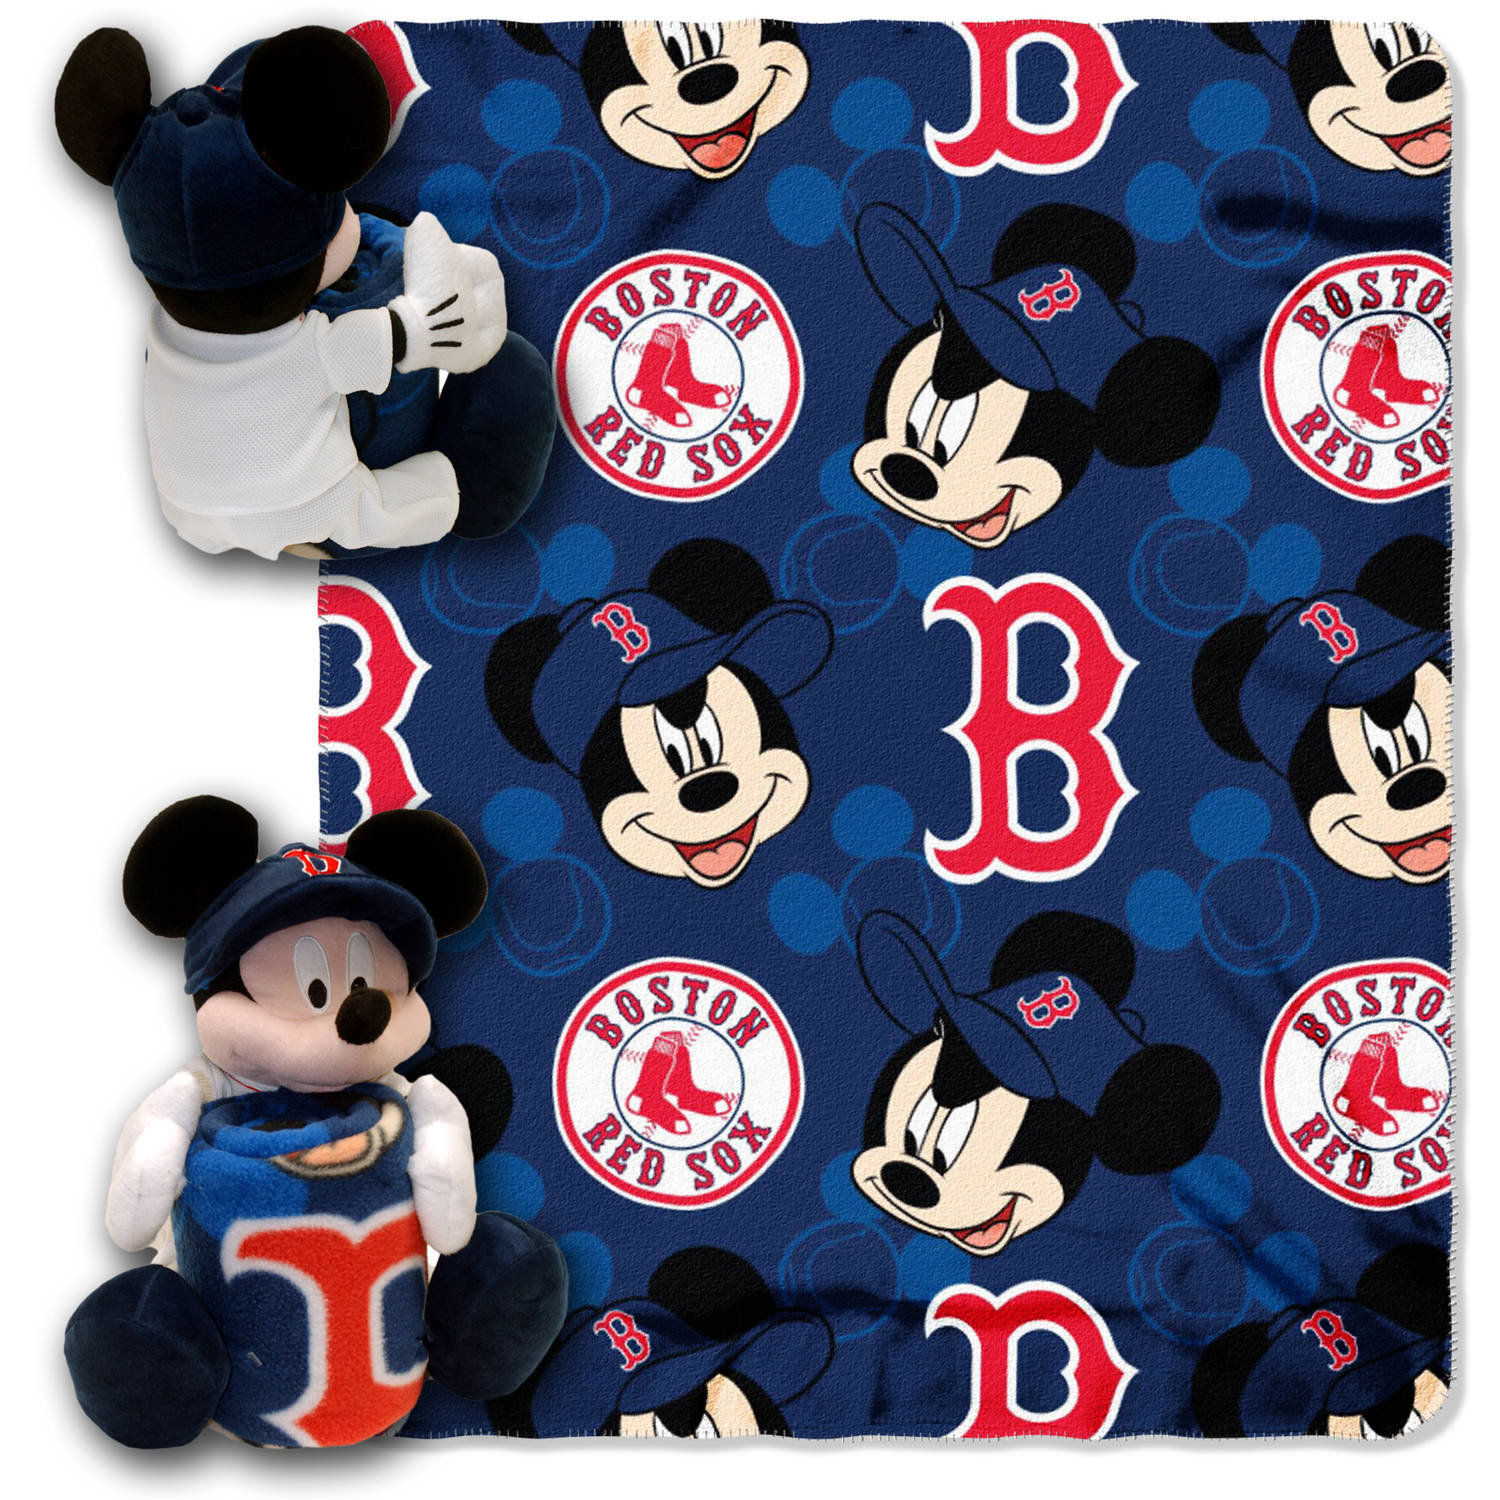 "Disney MLB Boston Red Sox Pitch Crazy Hugger Pillow and 40"" x 50"" Throw Set"